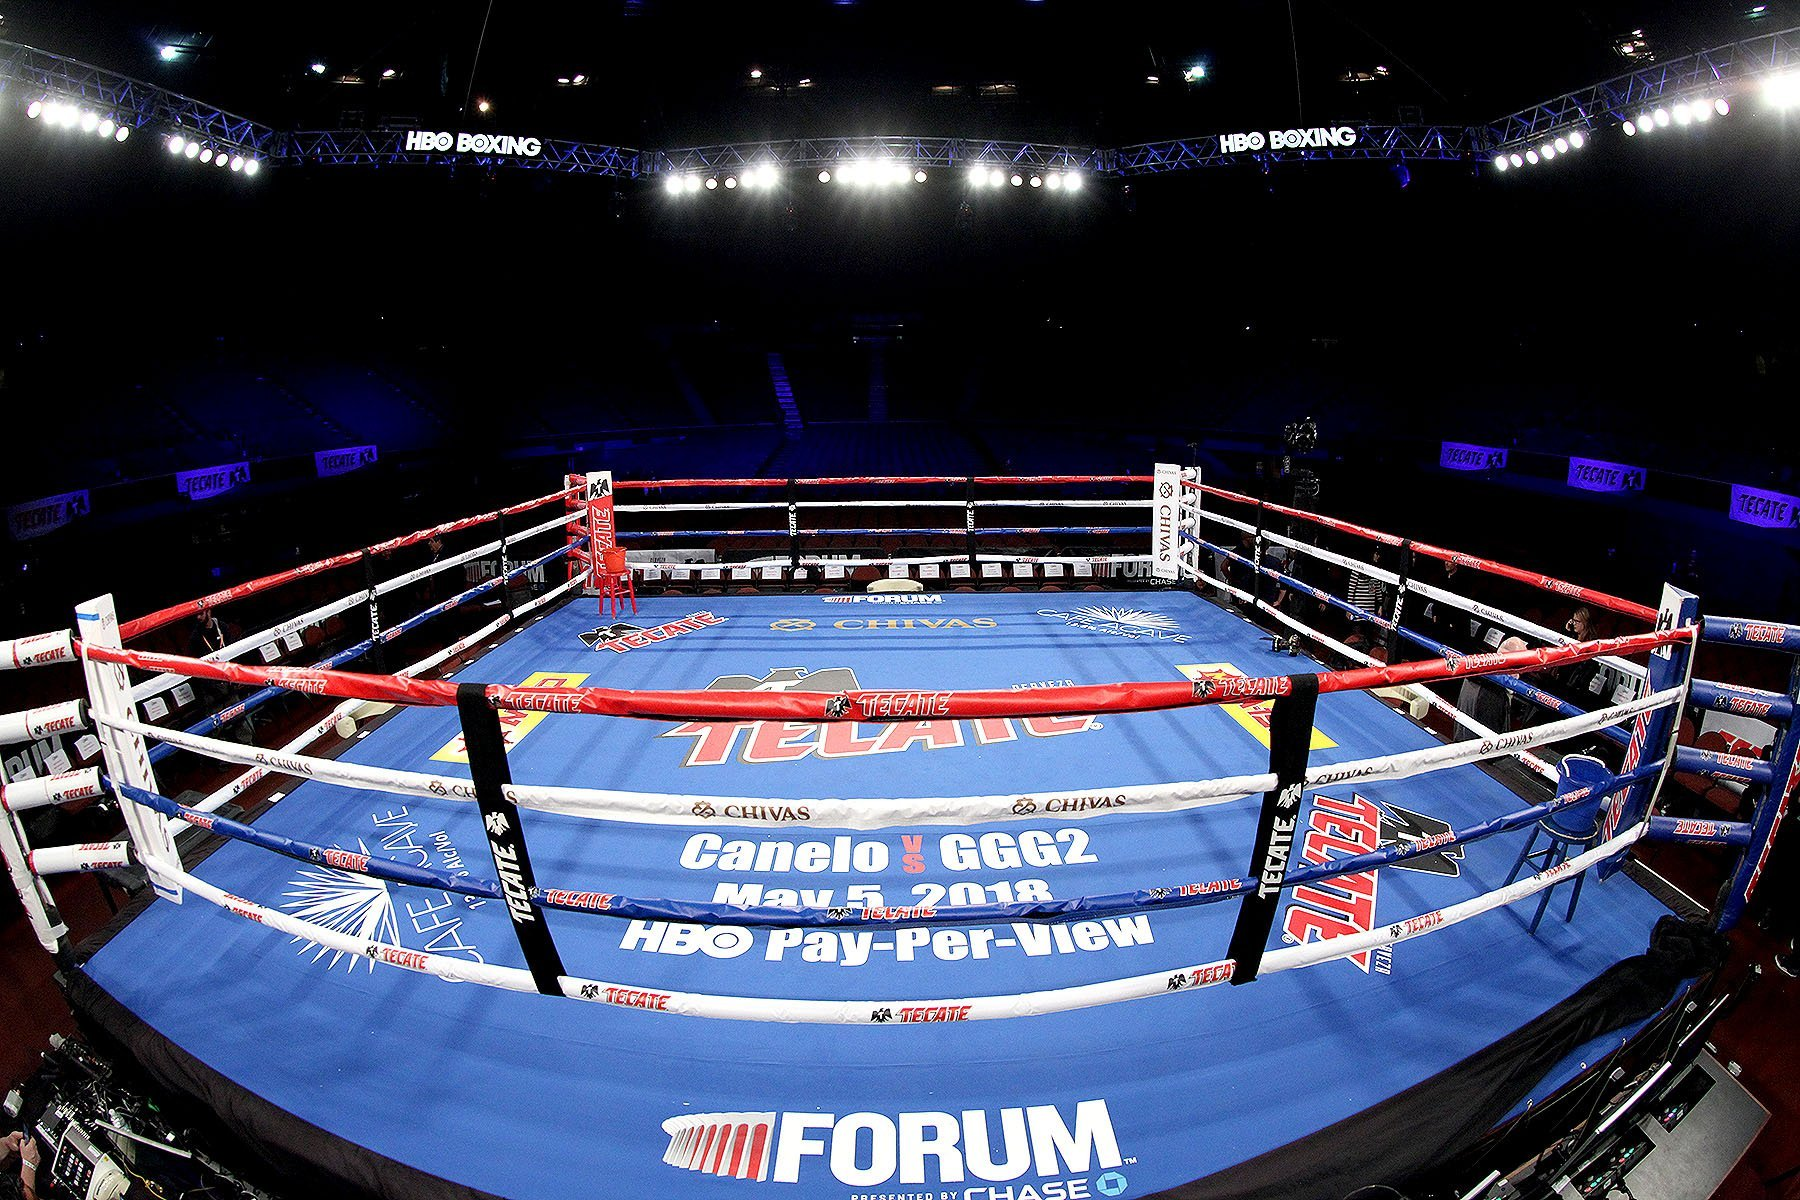 RJJ Boxing announces back-to-back shows - Boxing